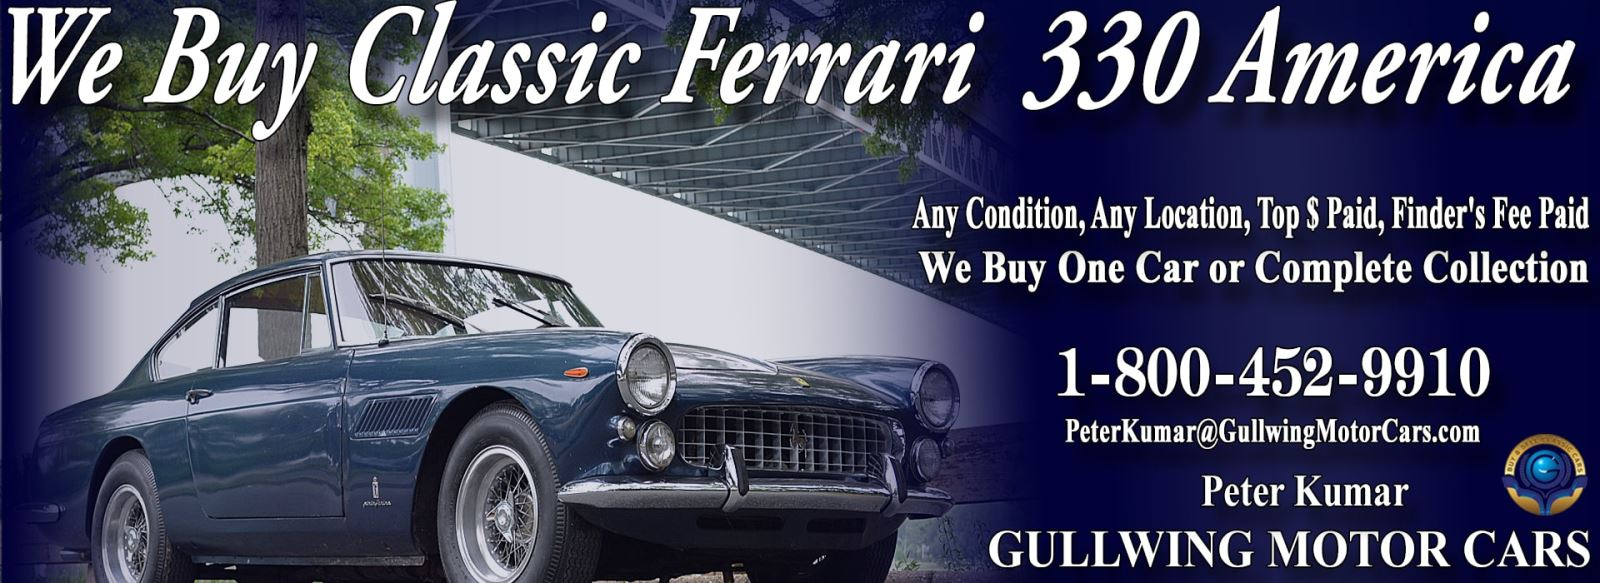 Classic Ferrari 375 America for sale, we buy vintage Ferrari 375 America. Call Peter Kumar. Gullwing Motor